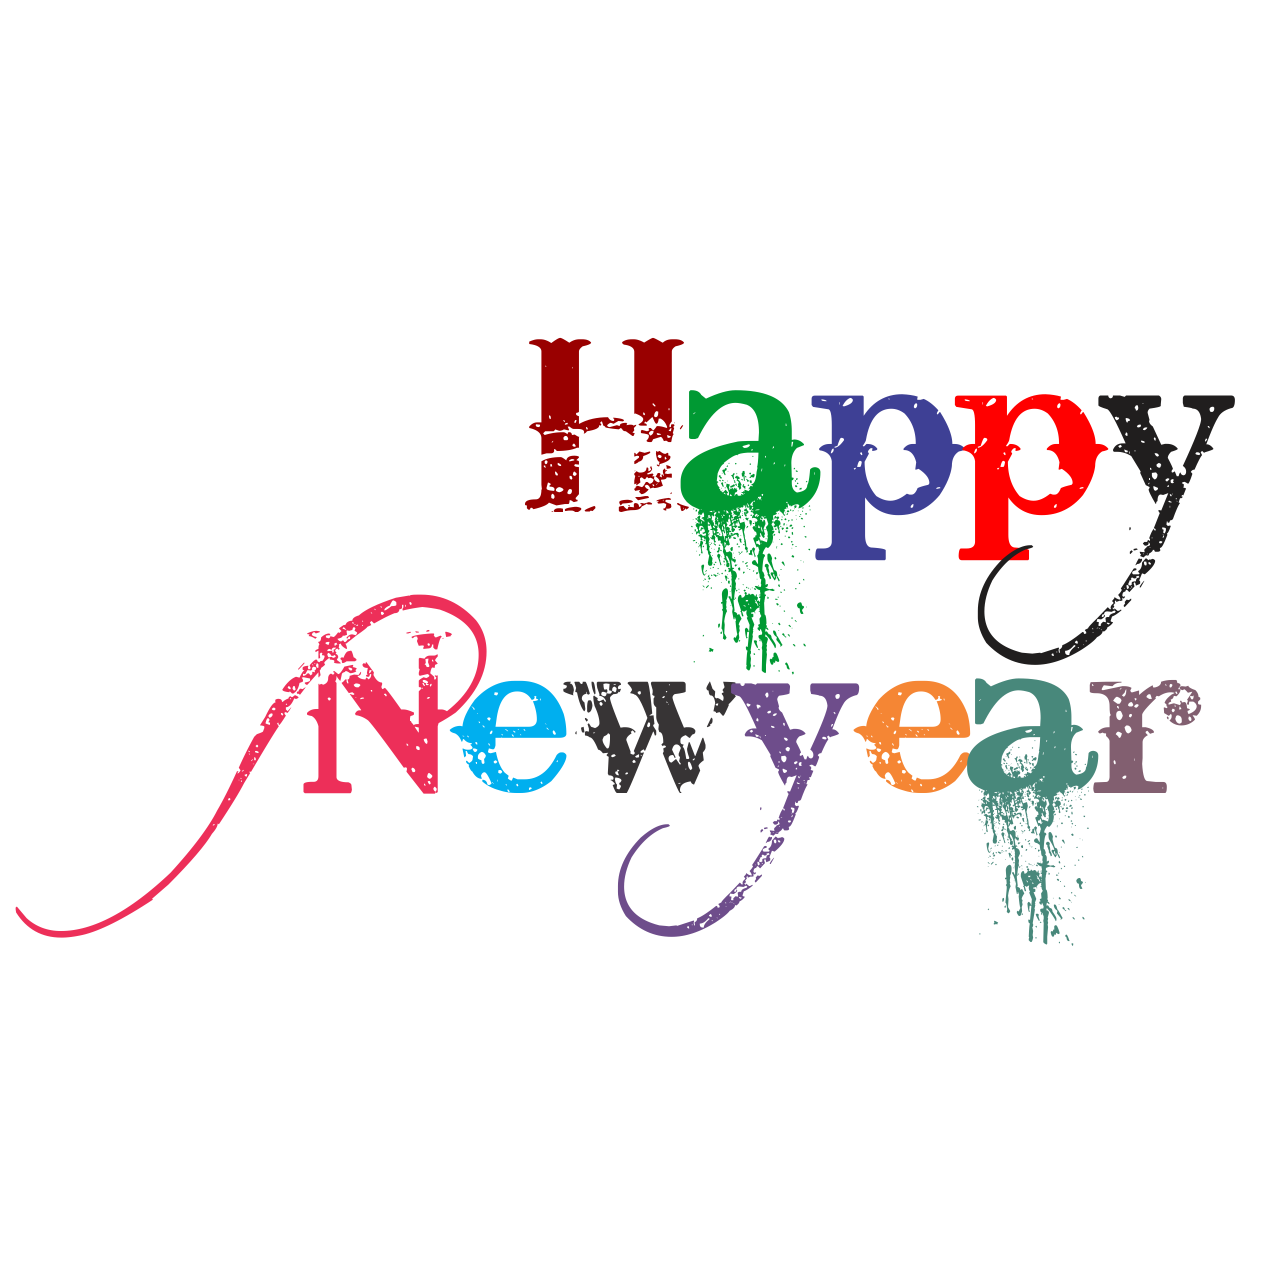 Happy New Year Png - Download Png Image   Happy New Year Png Hd, Transparent background PNG HD thumbnail